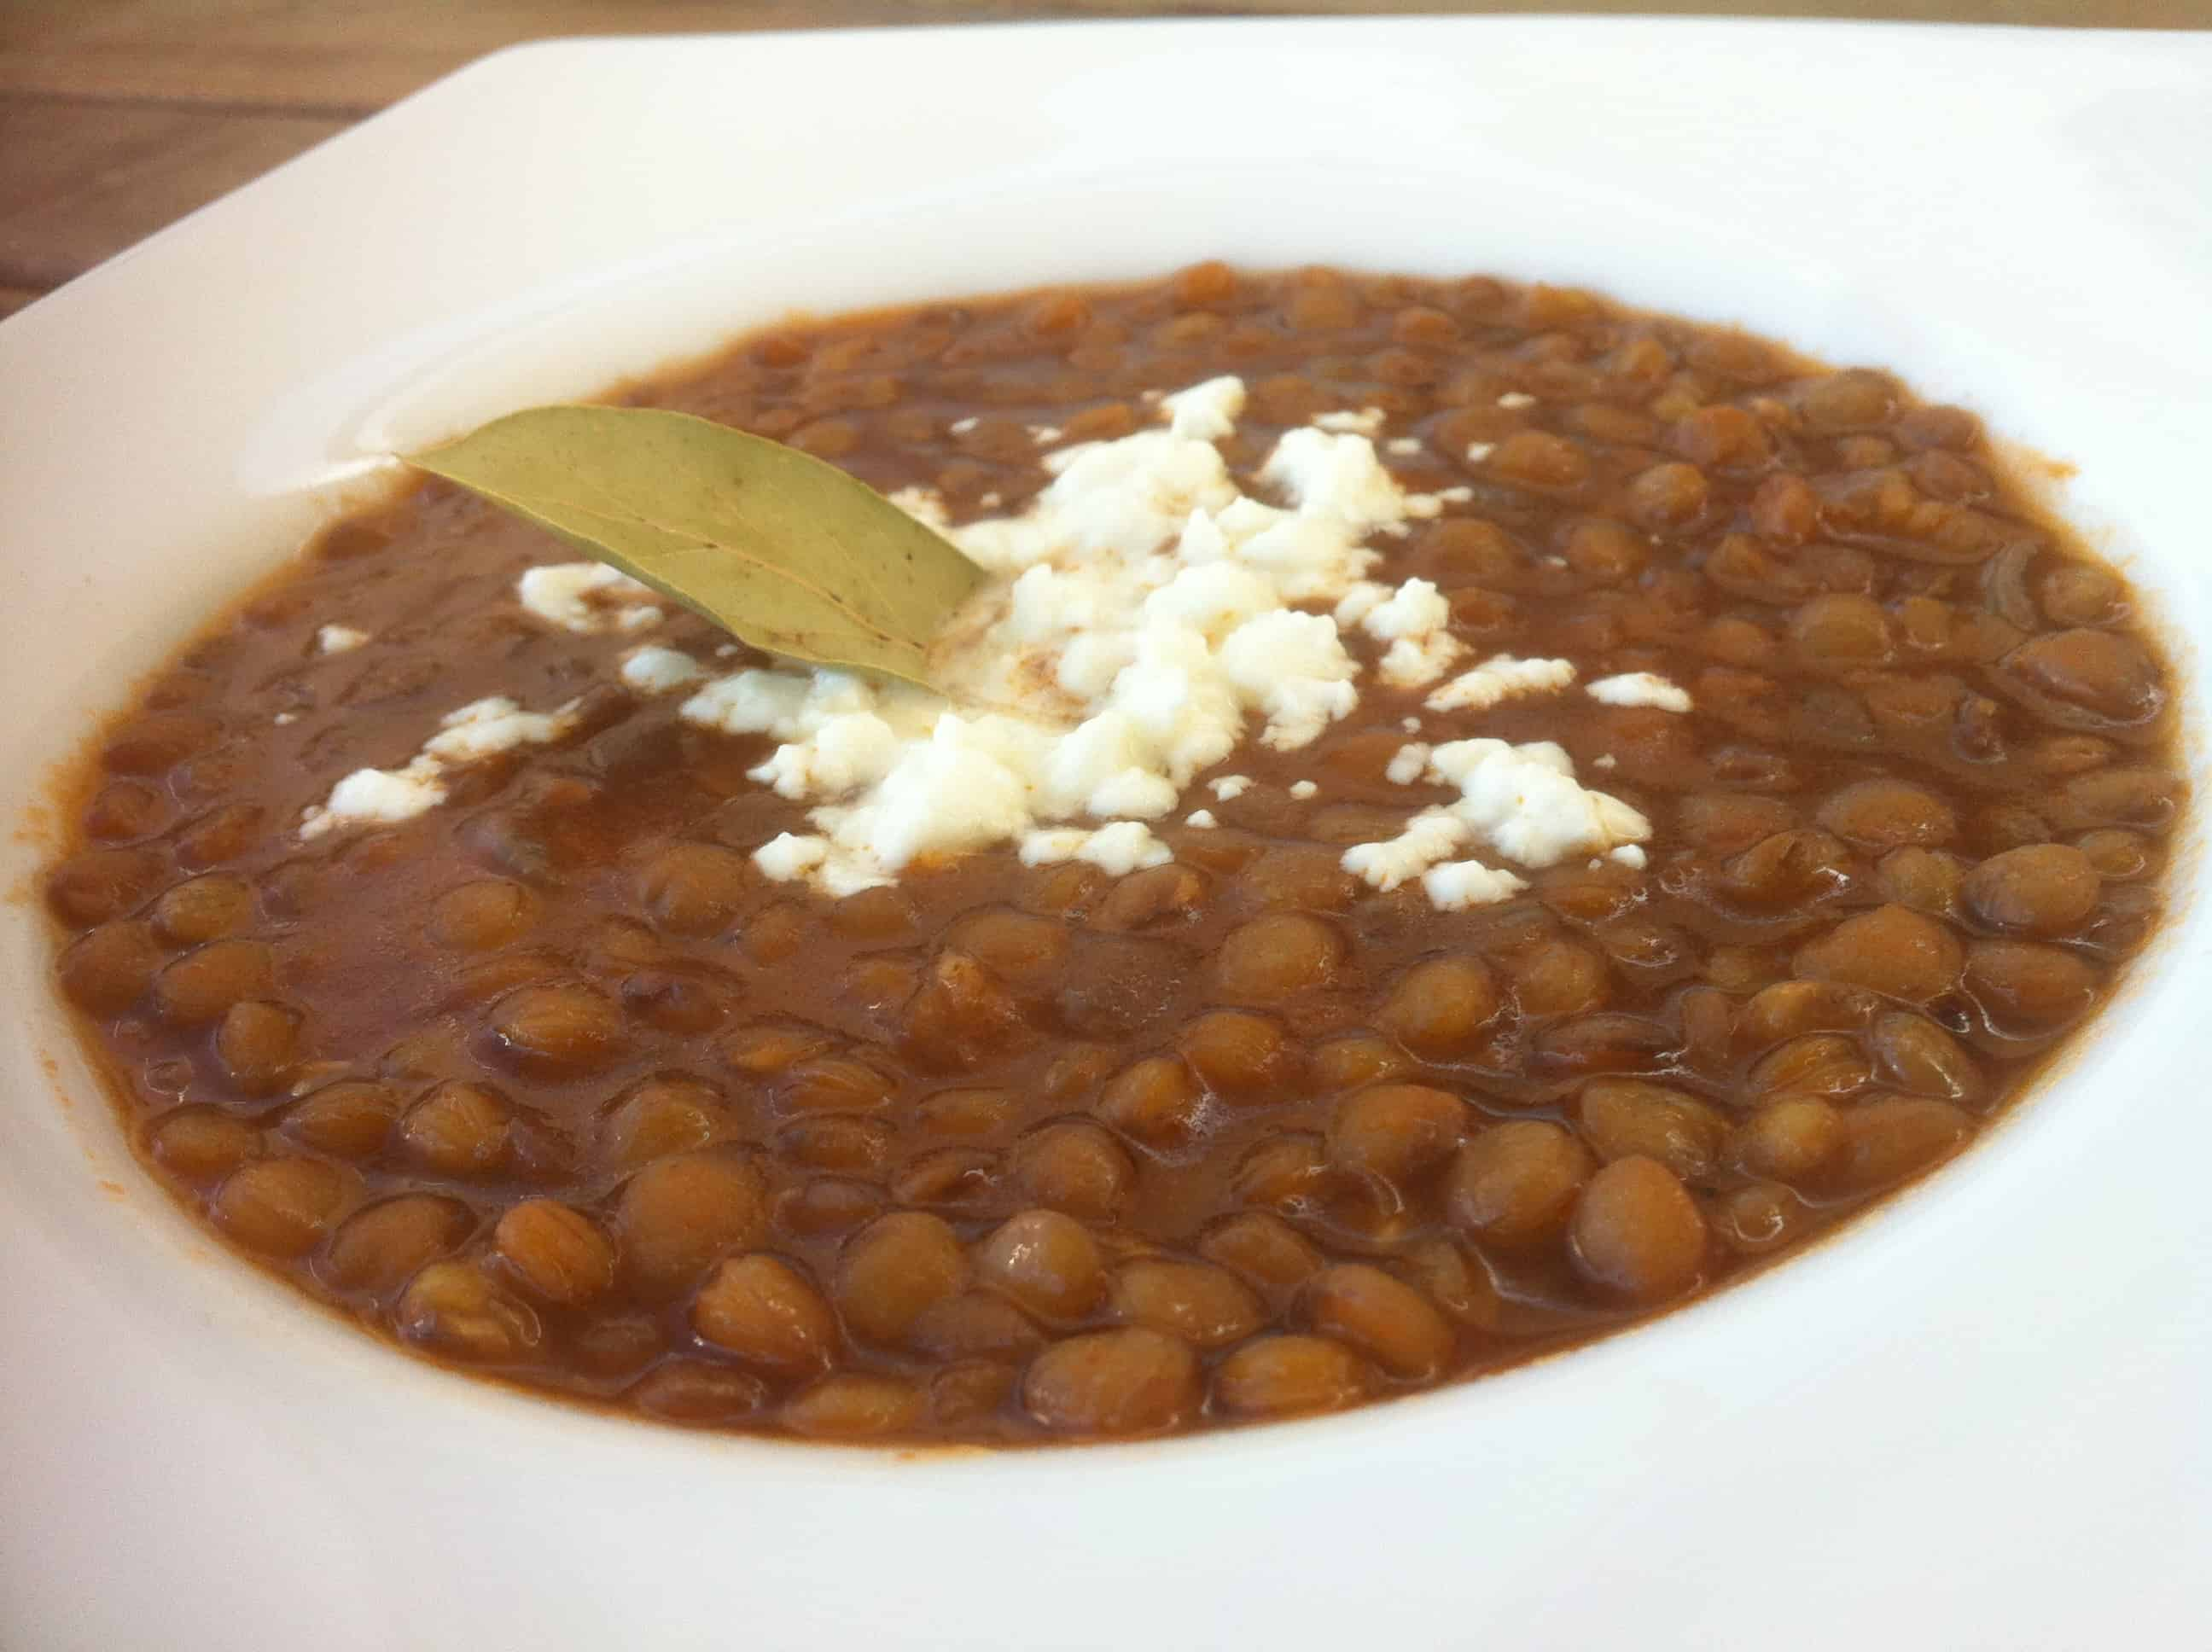 Greek Lentil Soup recipe (Fakes Soupa) - My Greek Dish